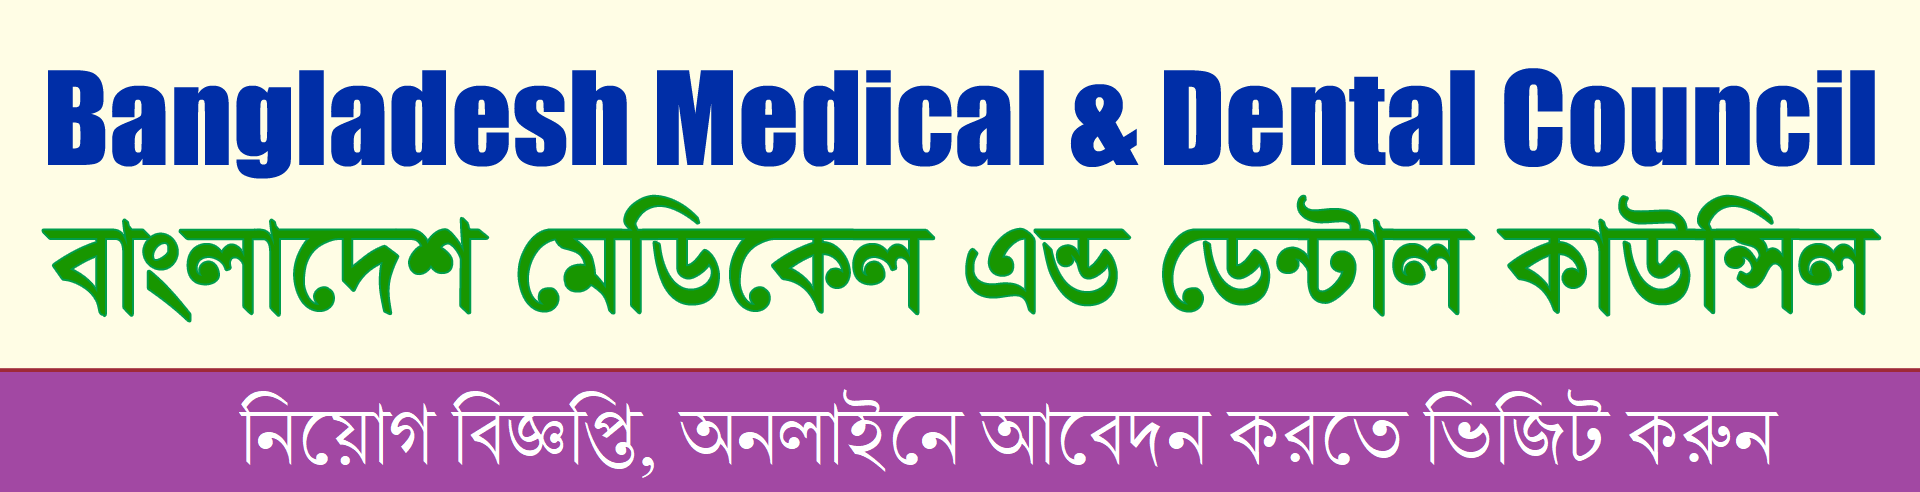 Bangladesh Medical and Dental Council Job Circular 2021